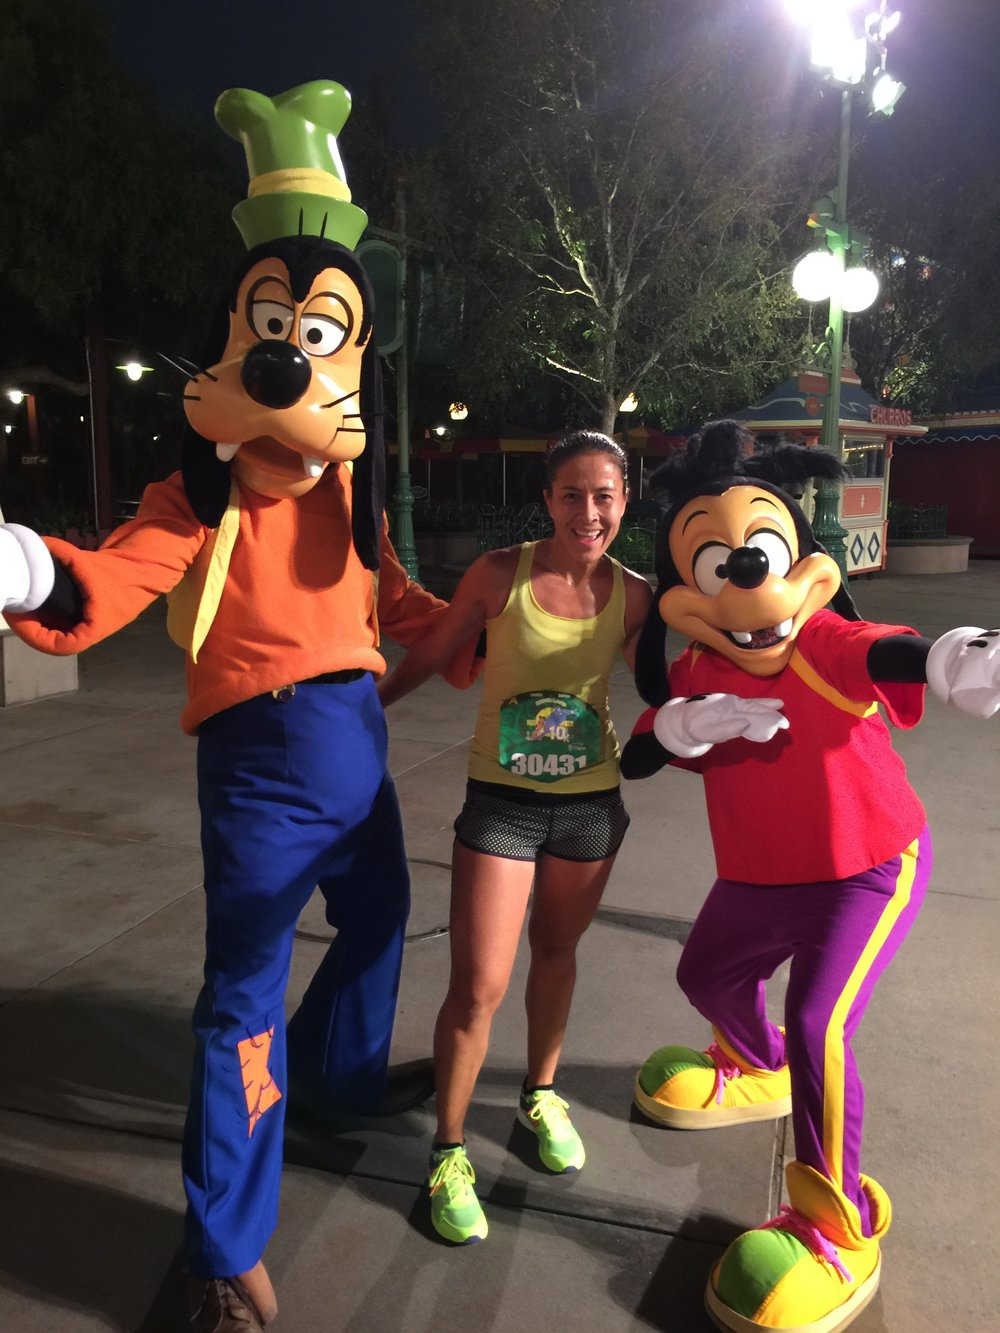 Goofy and Max!